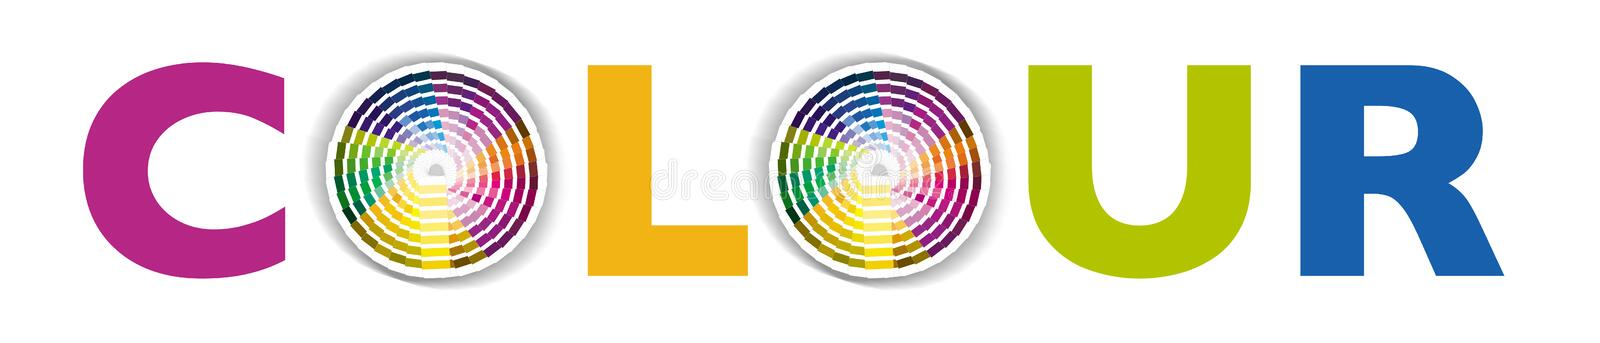 Download Circular Colour Or Color Swatch Stock Photo - Image: 16571872